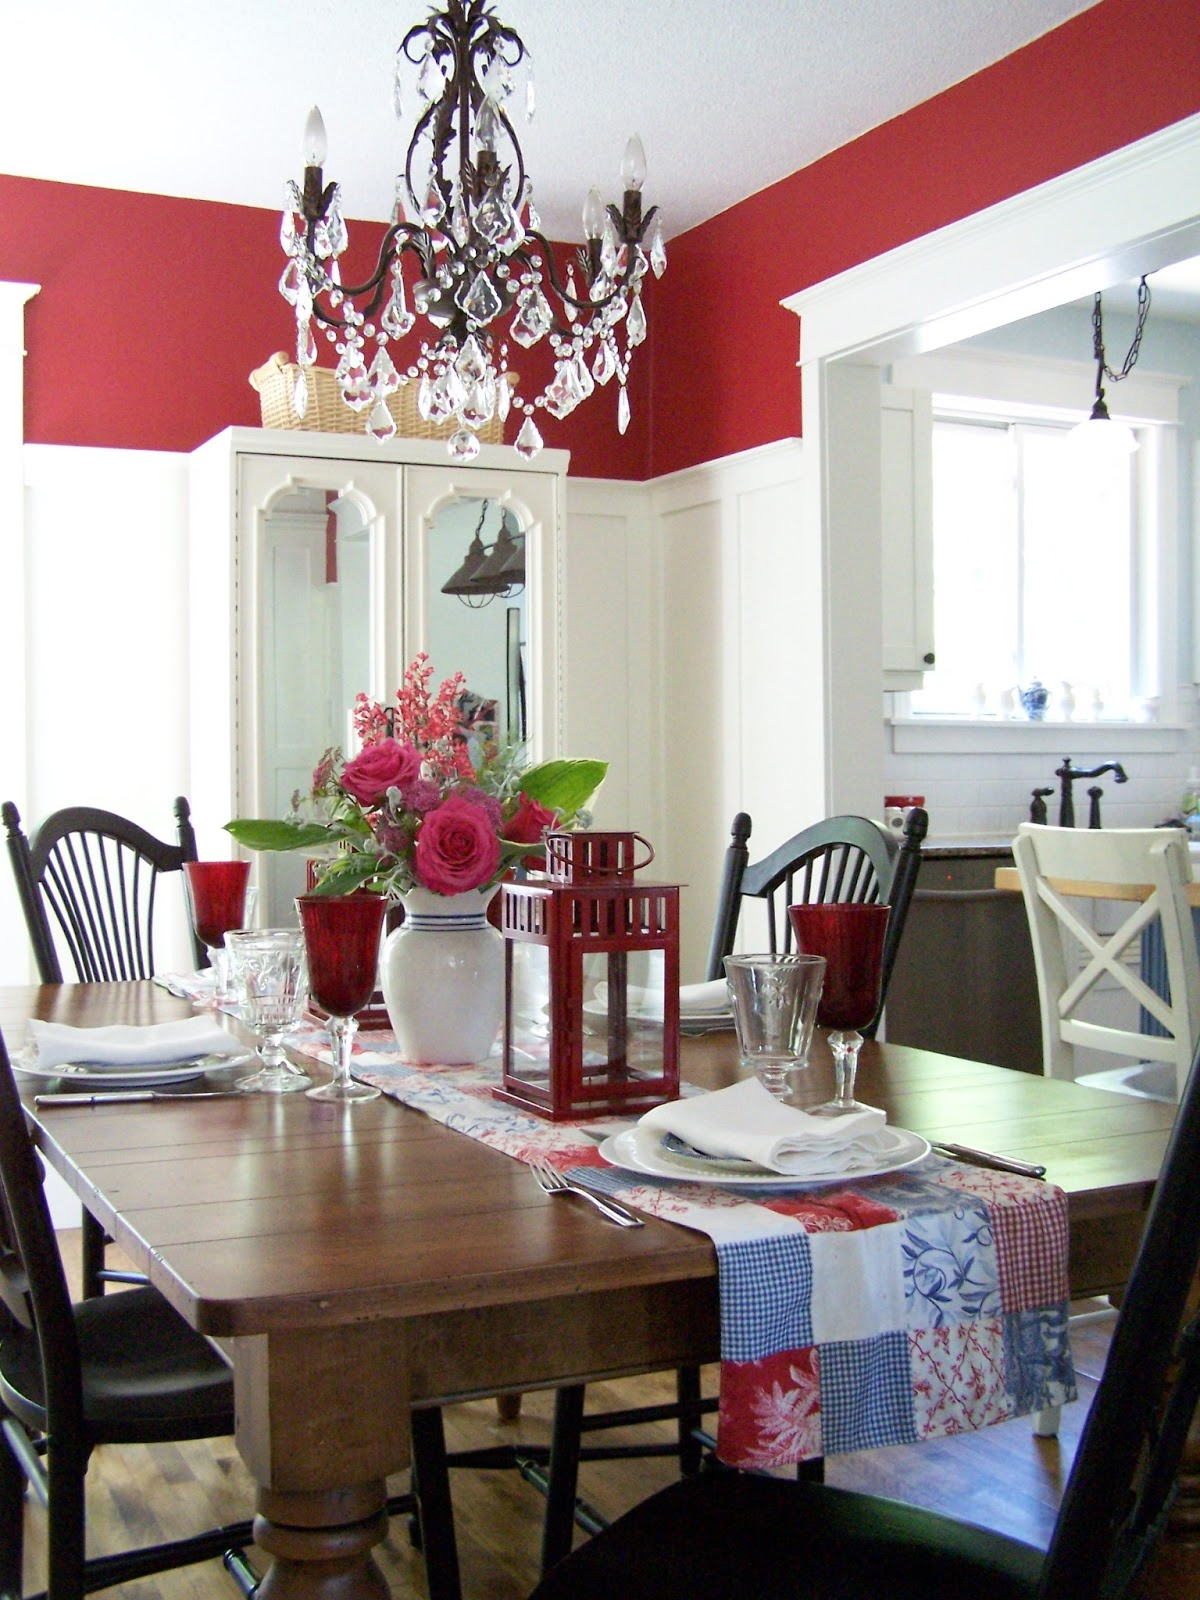 Delorme designs red dining rooms part 2 for Red dining room designs